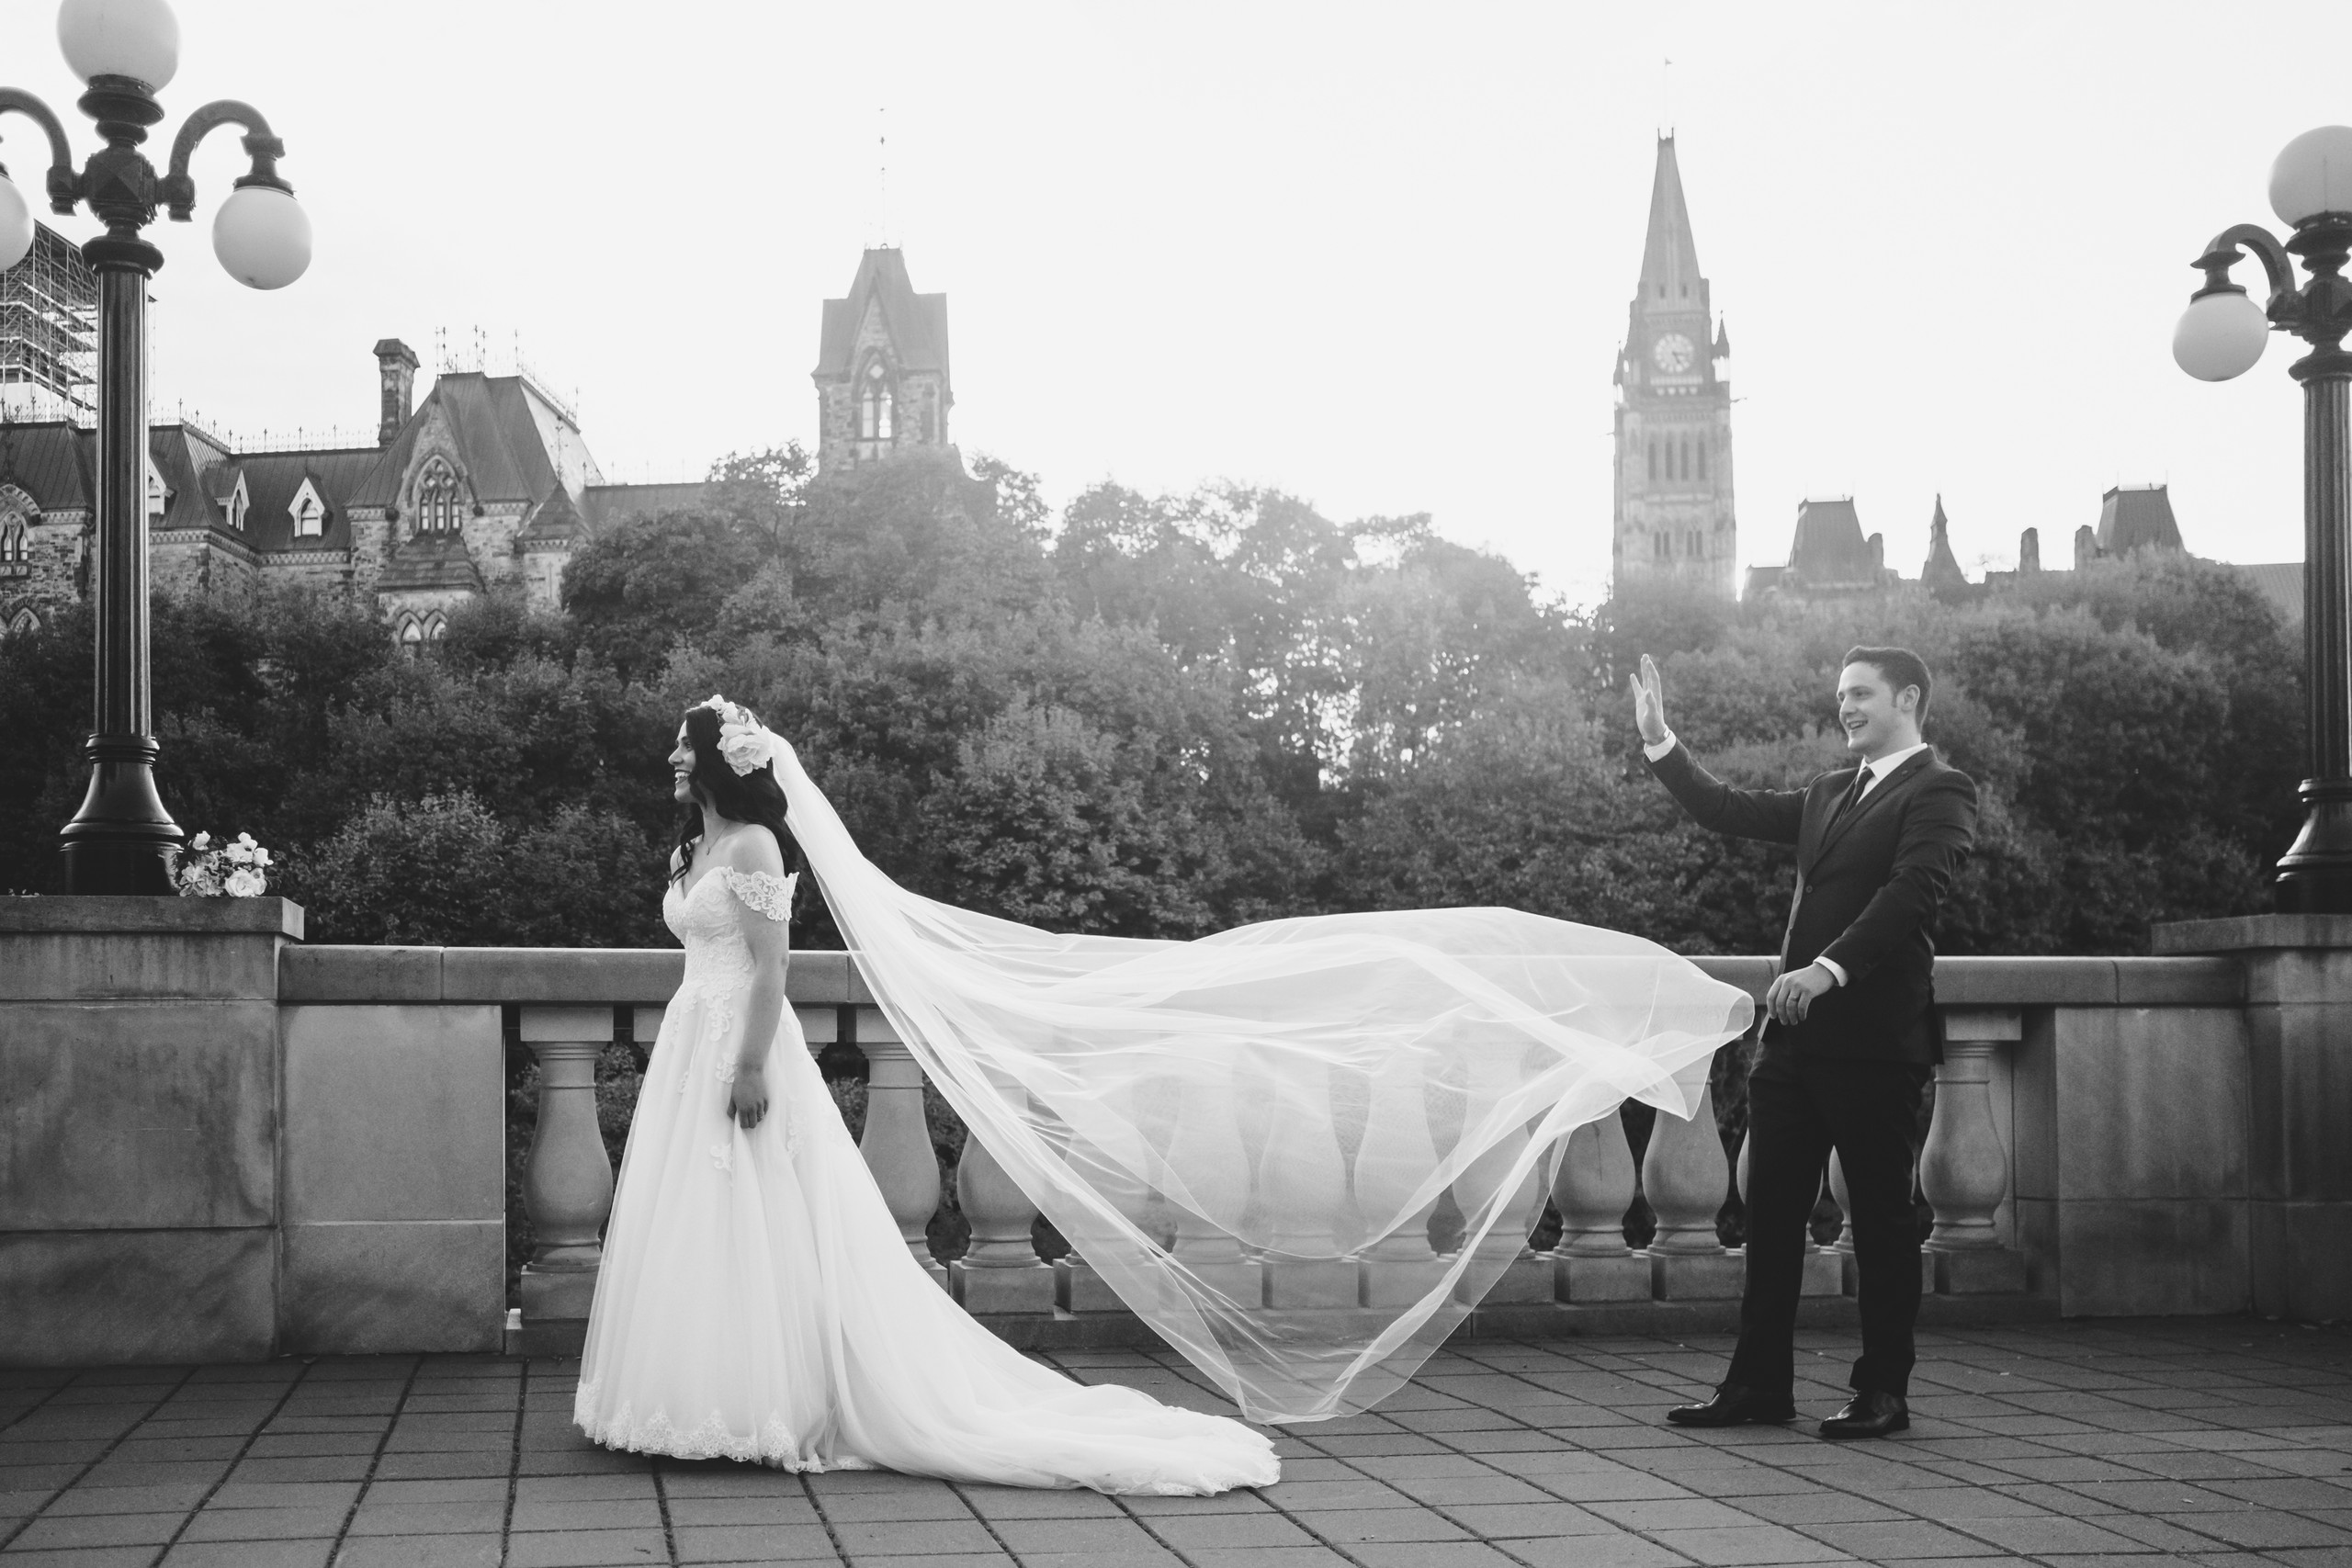 Fall wedding photography session downtown Ottawa at Major's Hill Park with Melanie Mathieu Photography.